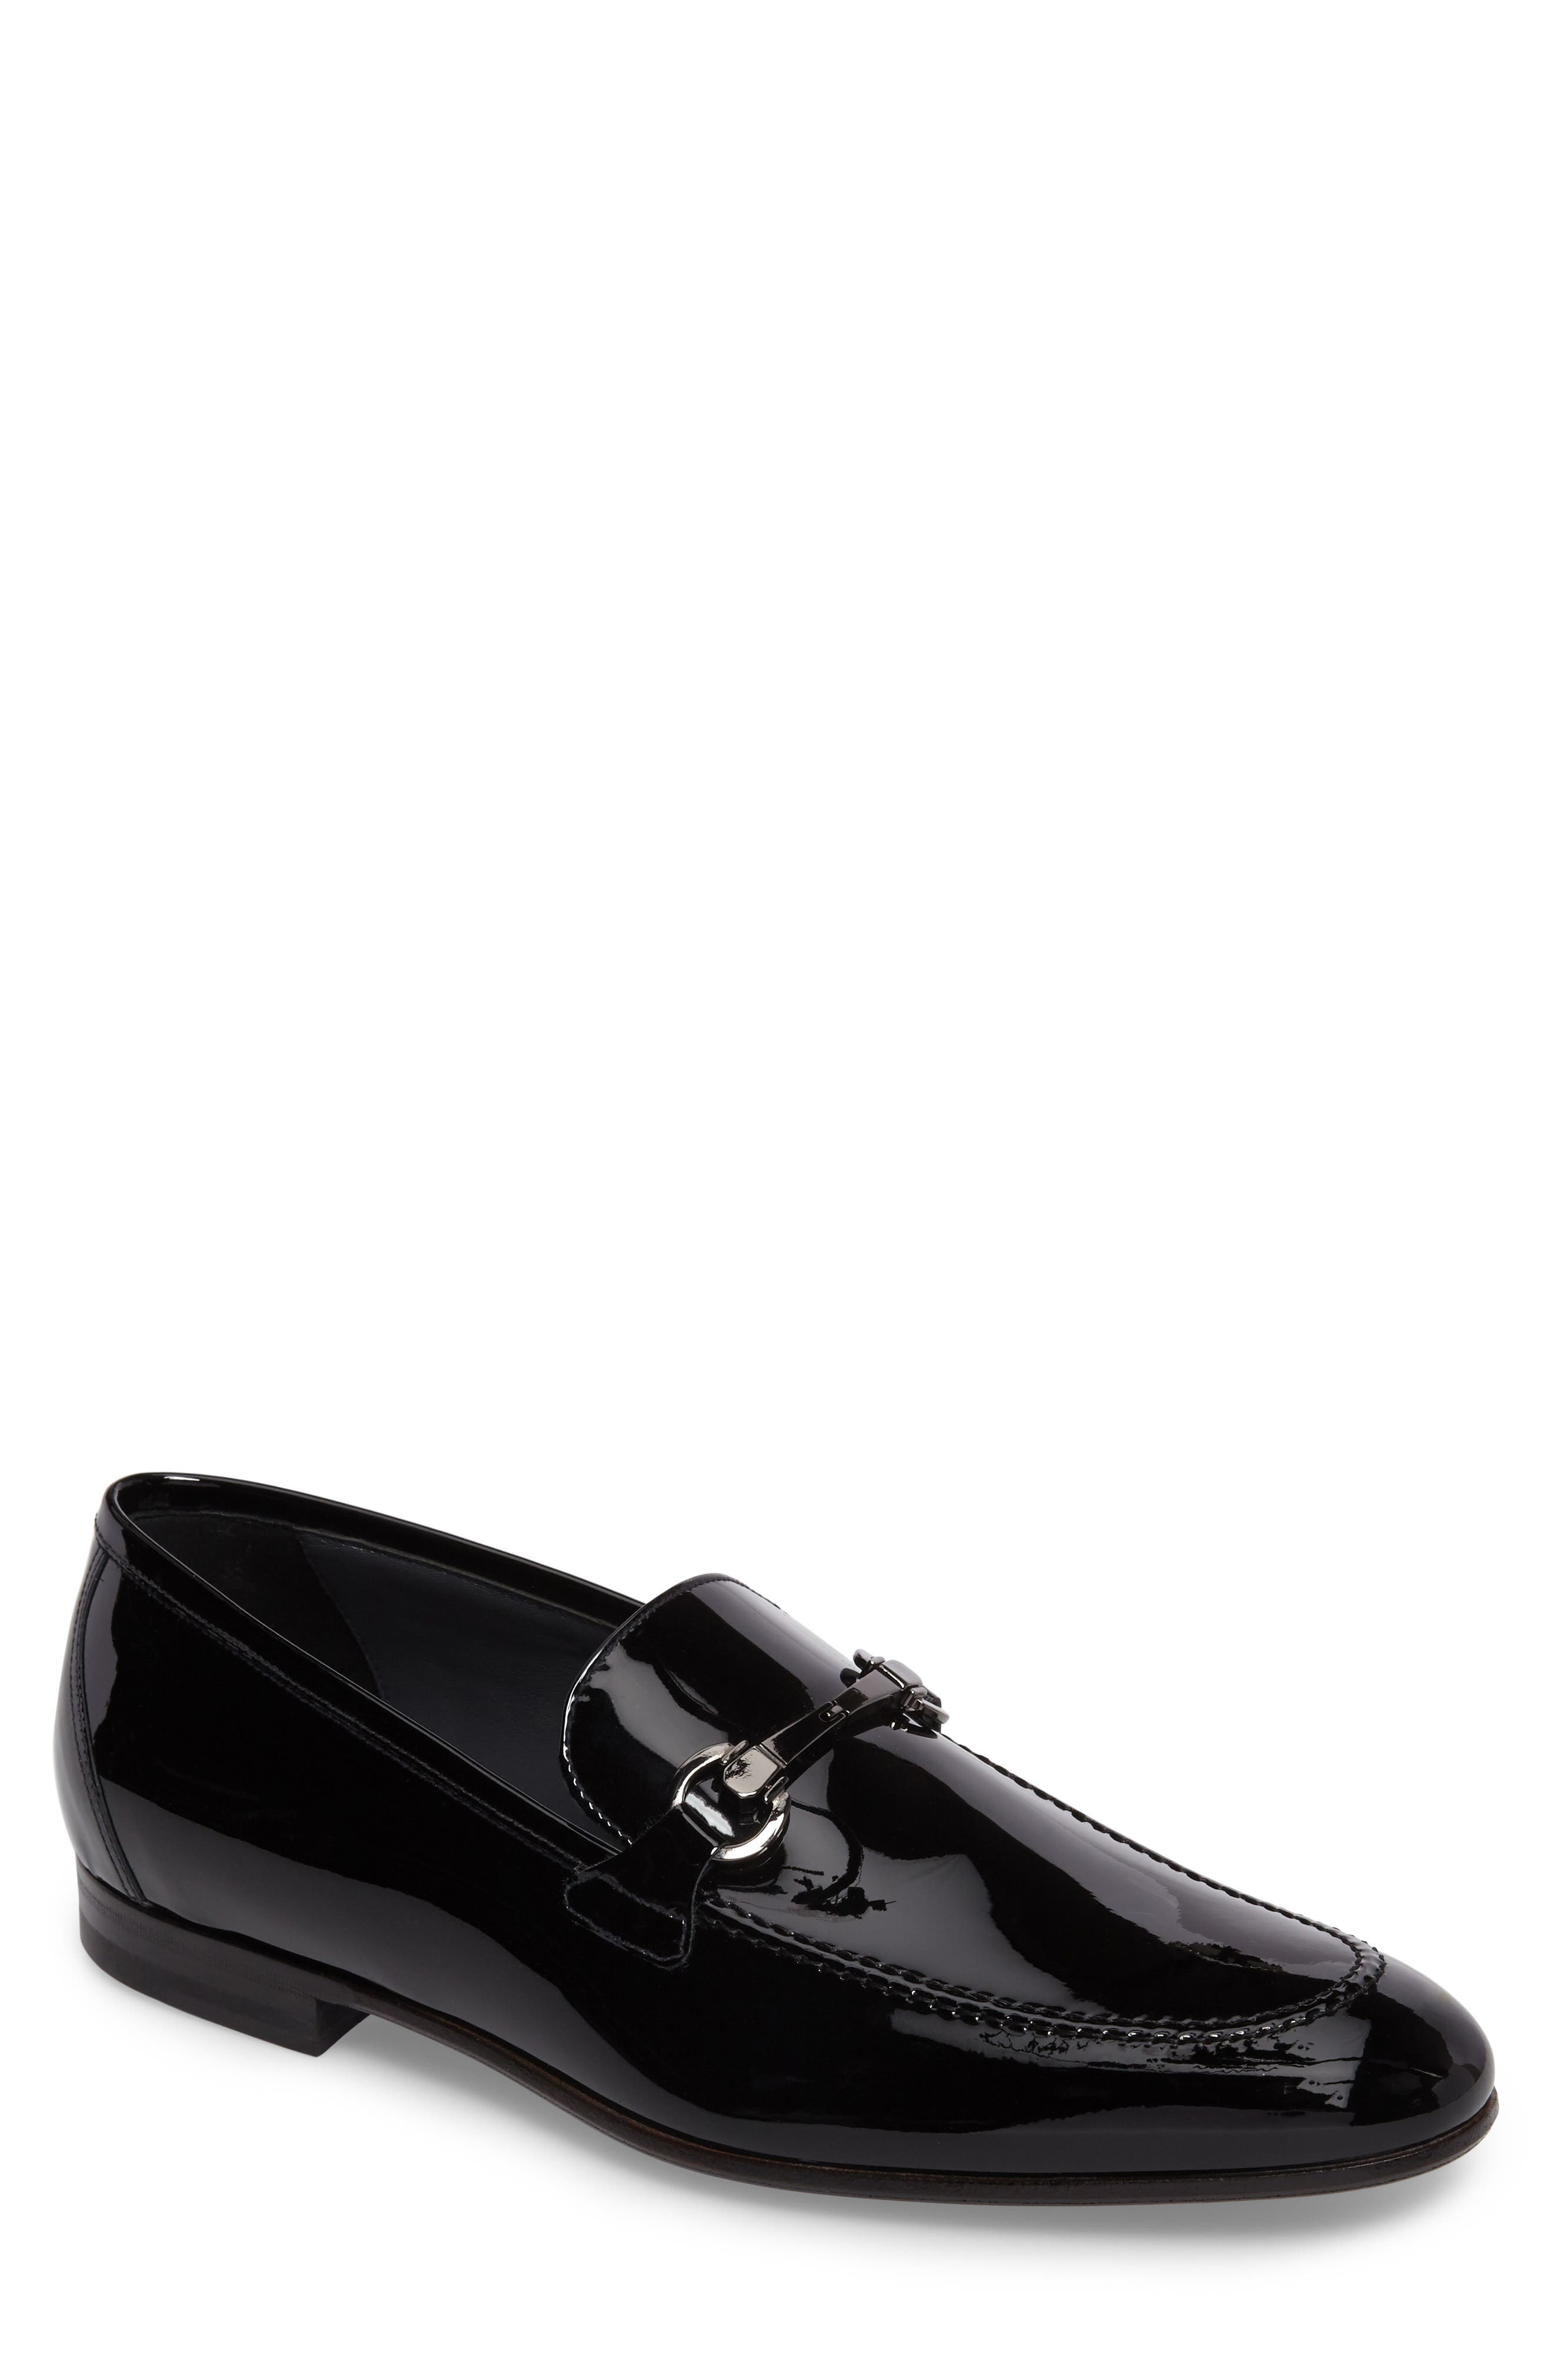 Brianza Bit Loafer,                         Main,                         color, Black Patent Leather